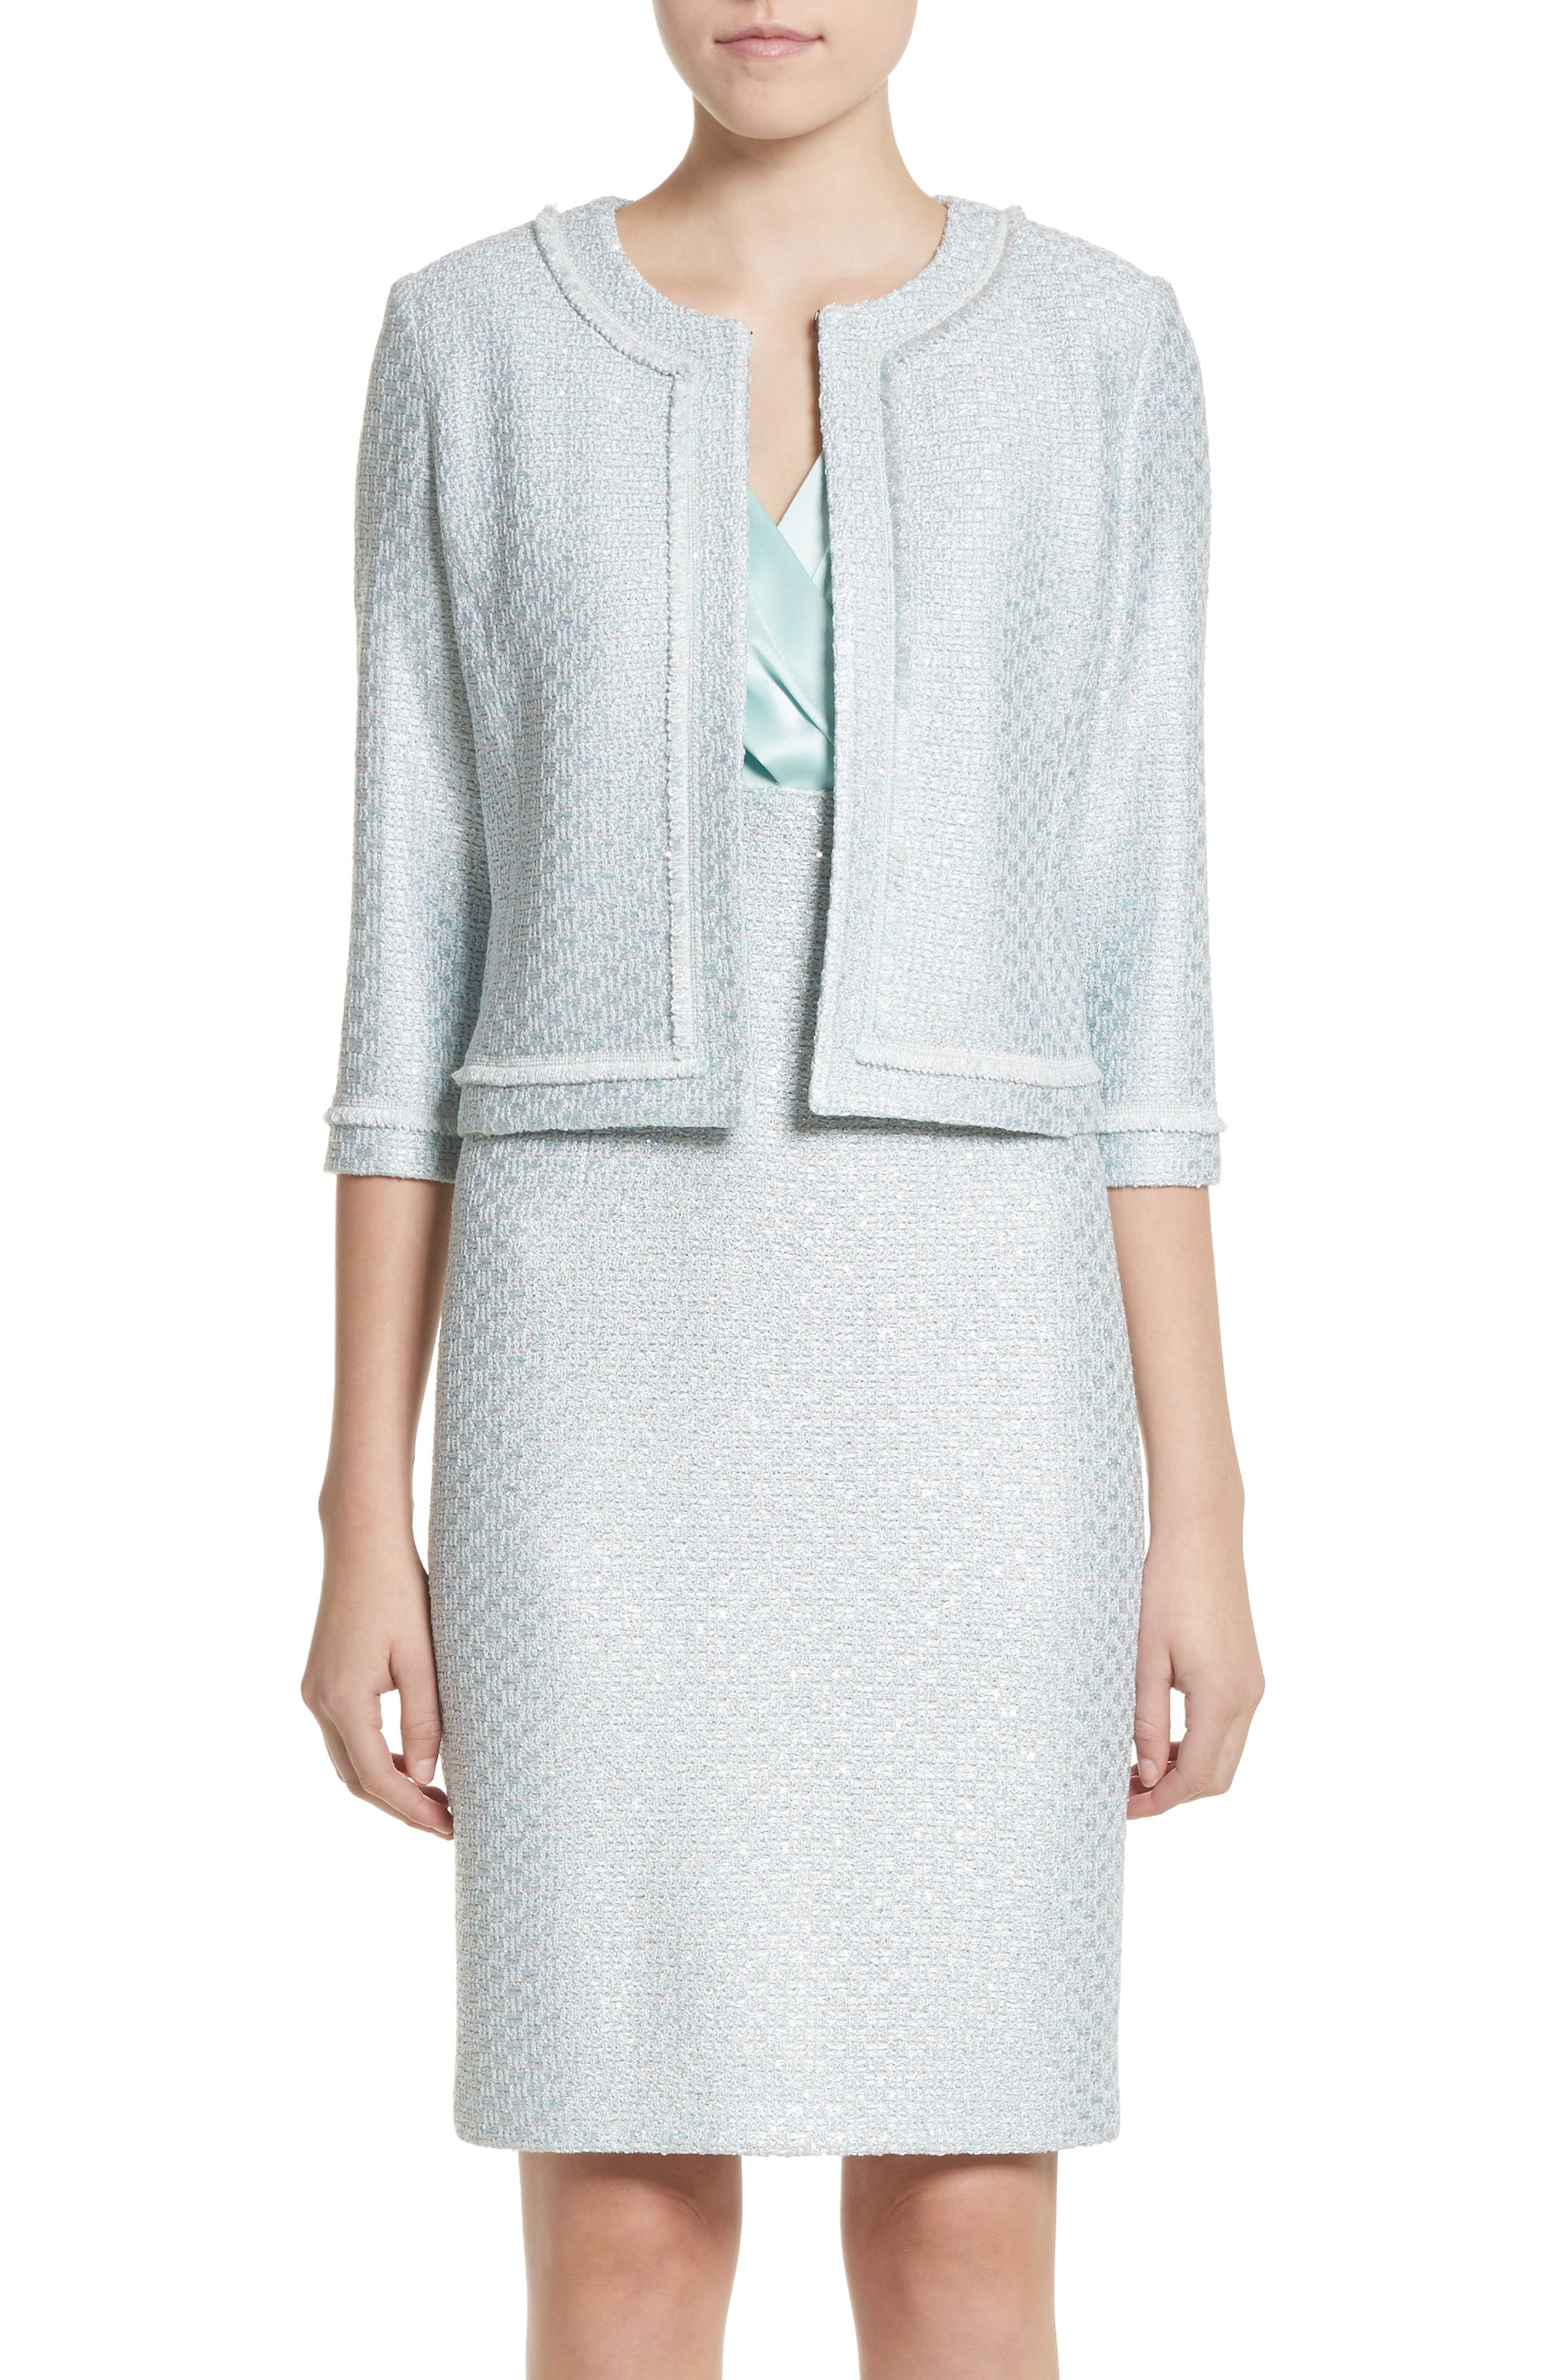 Alternate Image 1 Selected - St. John Collection Hansh Sequin Knit Jacket